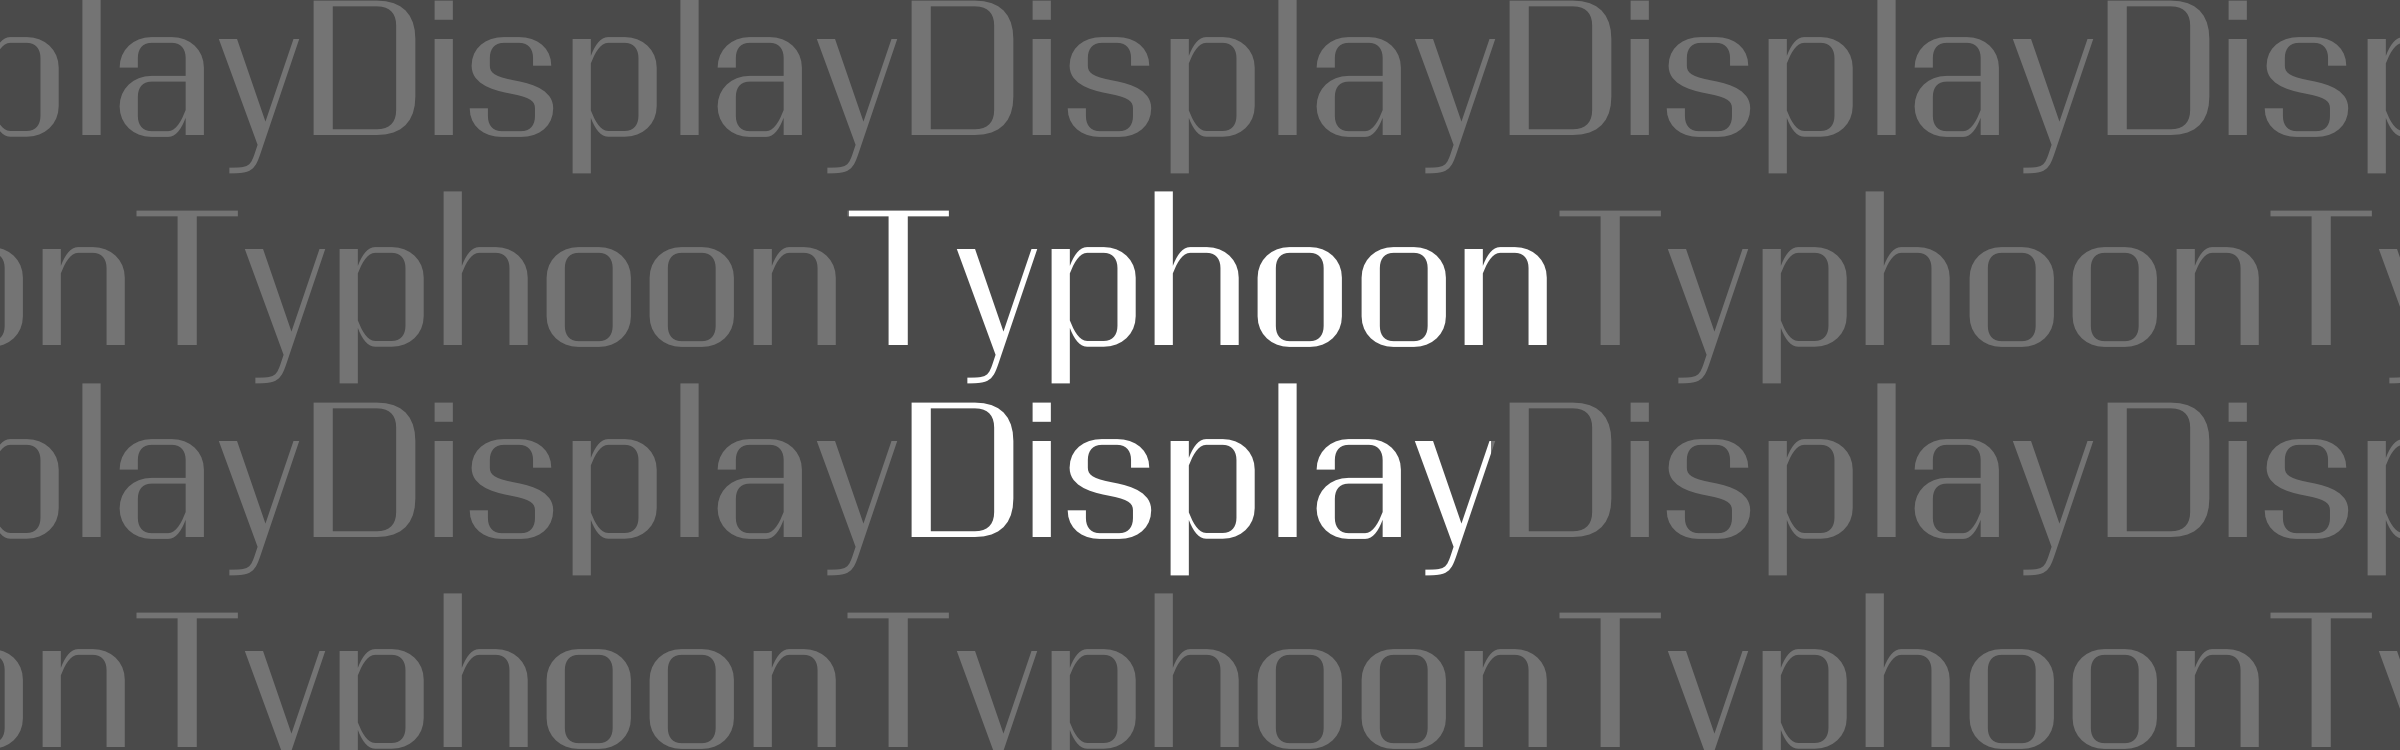 Free Typeface: Typhoon Display Regular